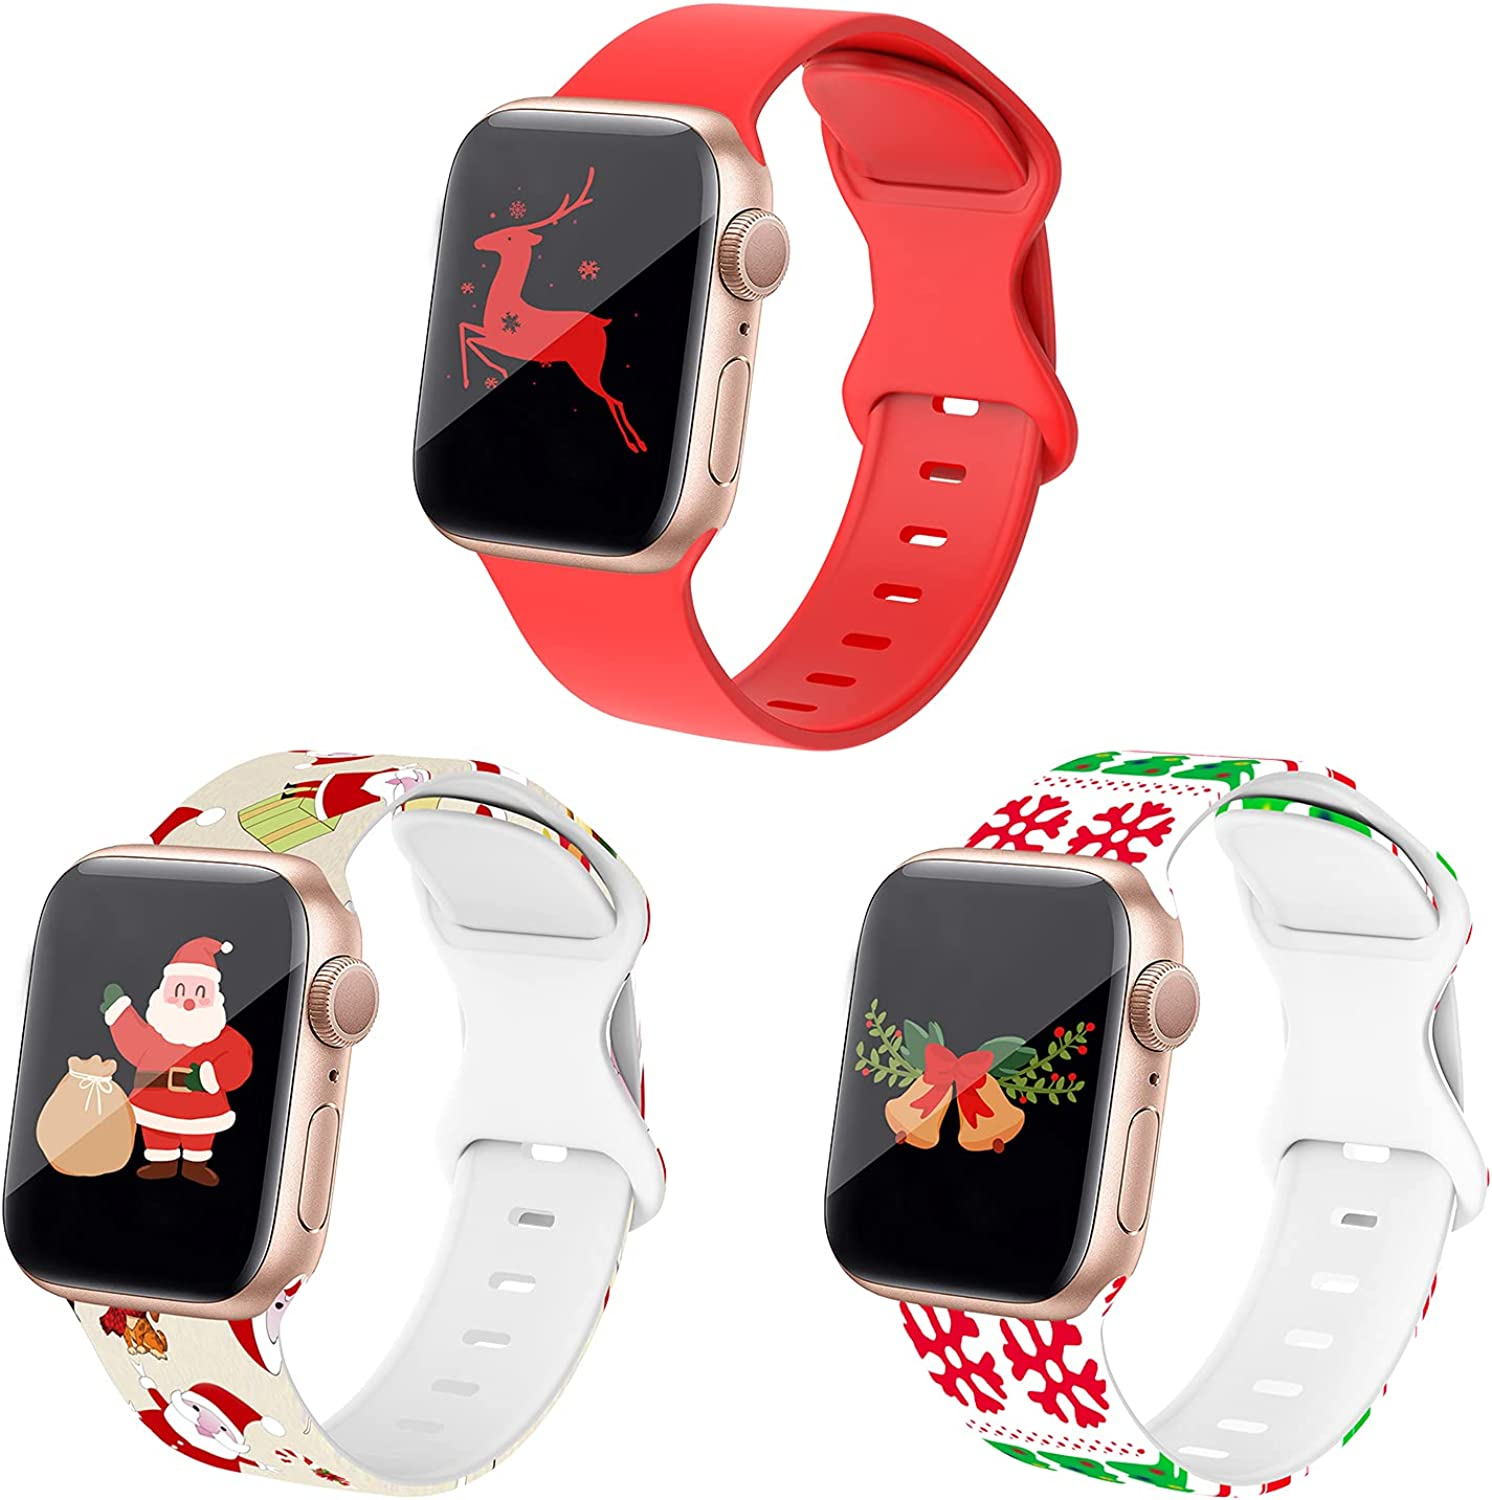 DABAOZA Compatible for Apple Watch Band 38mm 40mm 41mm 42mm 44mm 45mm[3 Pack], Sport iWatch Silicone Band Soft Replacement Women Men Strap for iWatch SE/Series 7/6/5/4/3/2/1